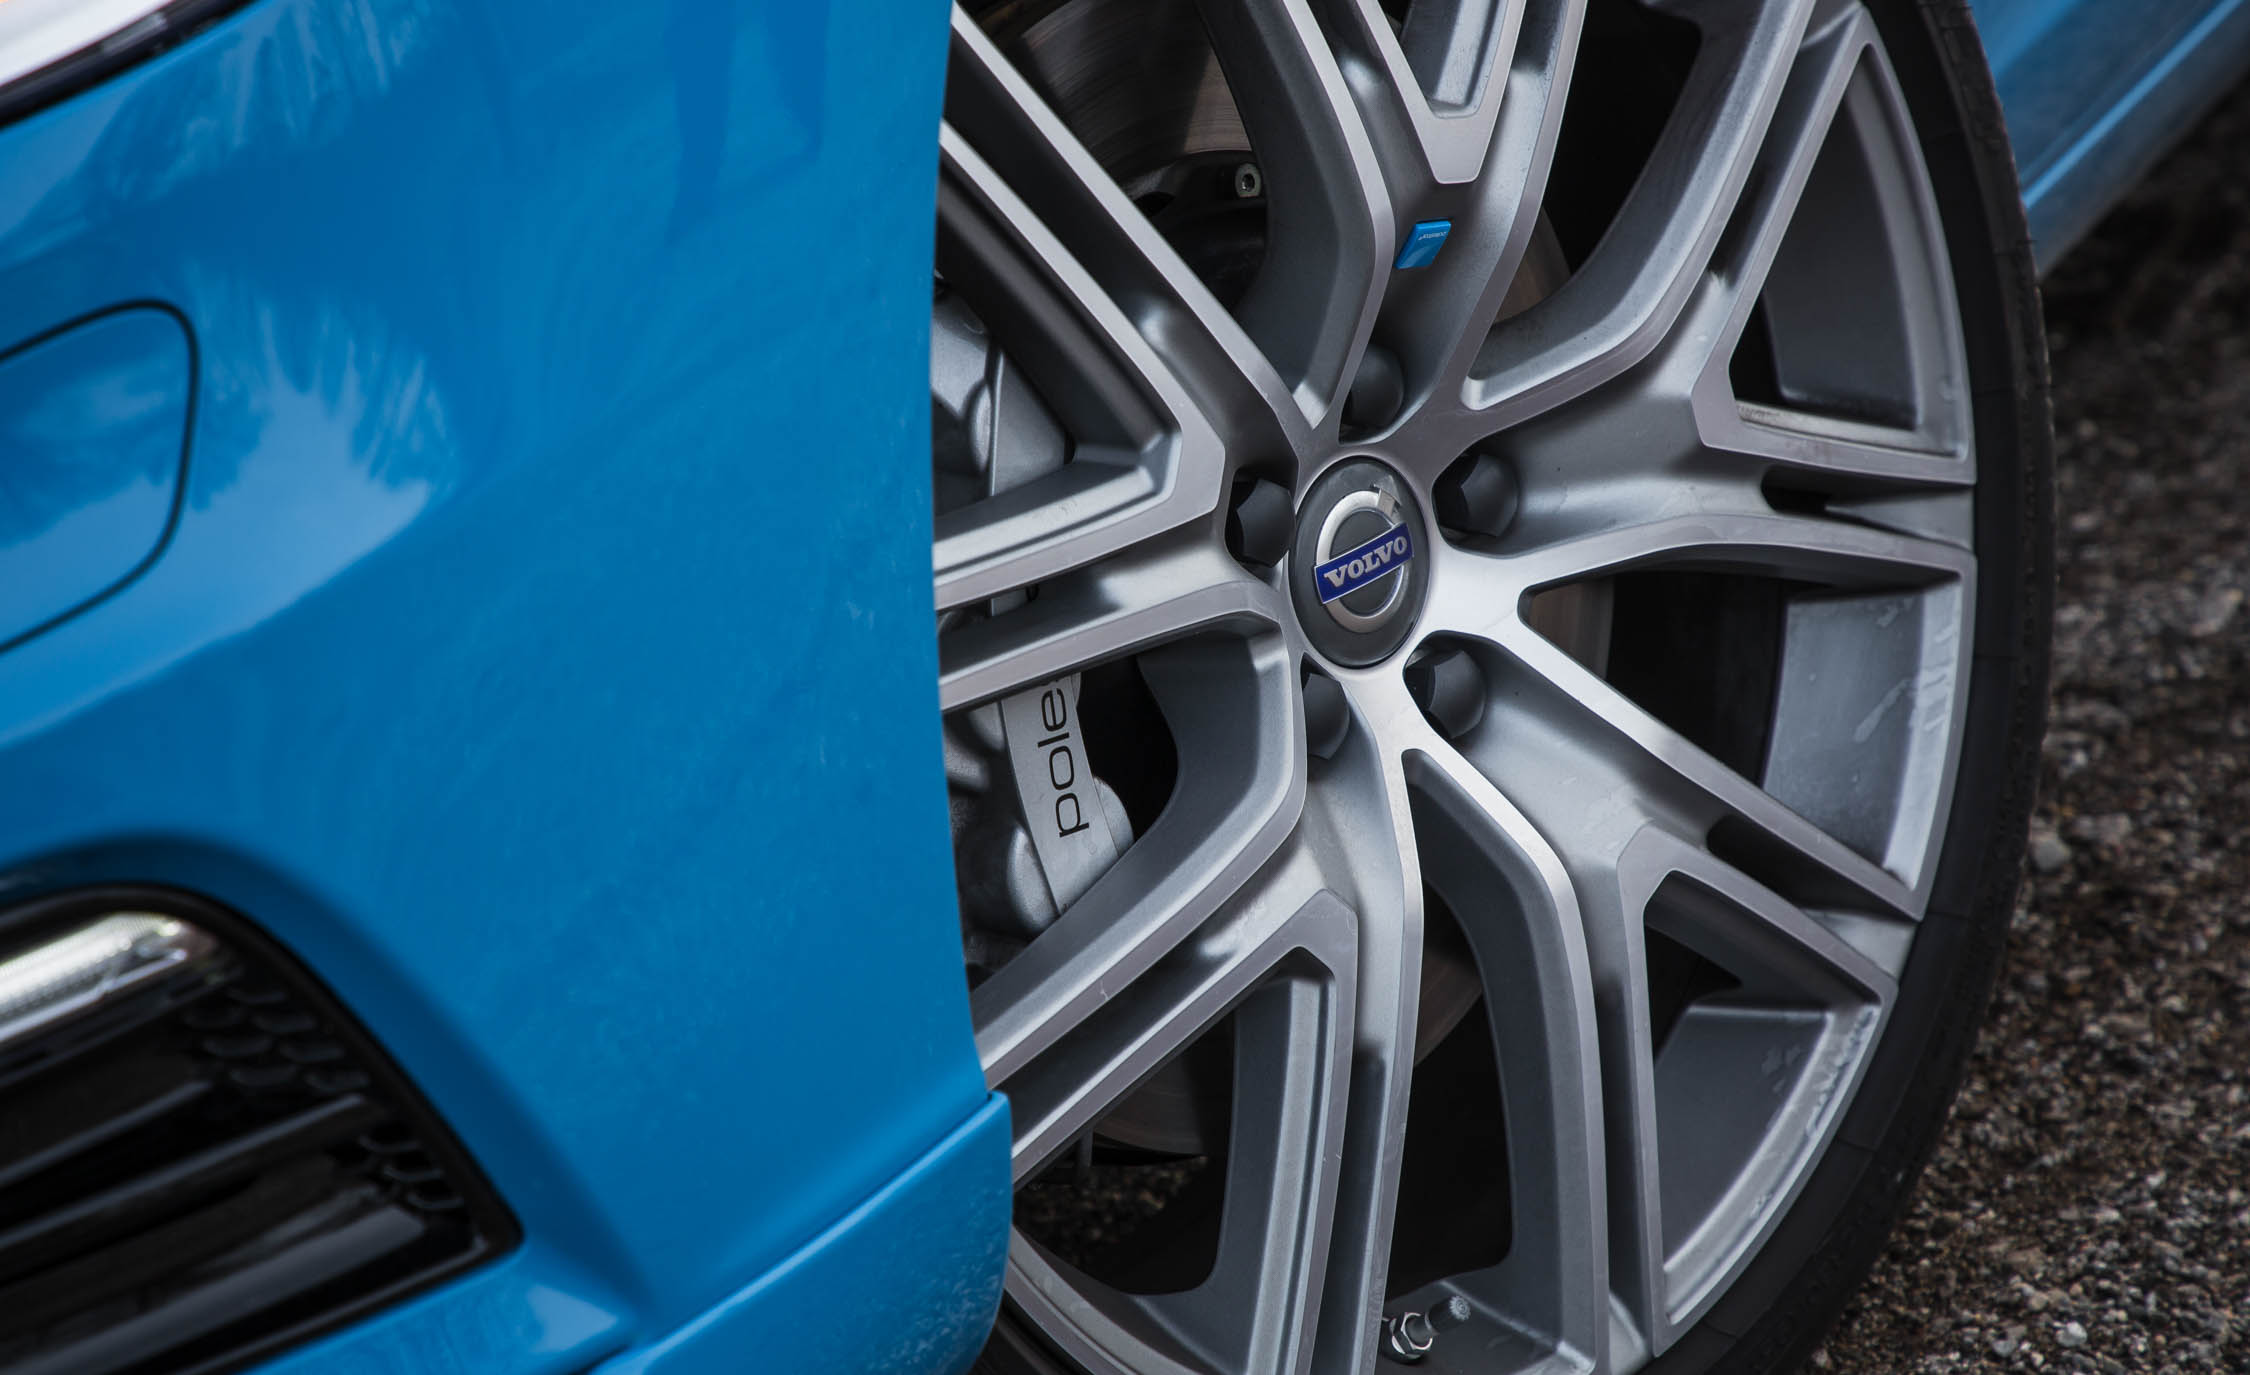 2017 Volvo V60 Polestar Exterior View Wheel Trim (Photo 16 of 53)